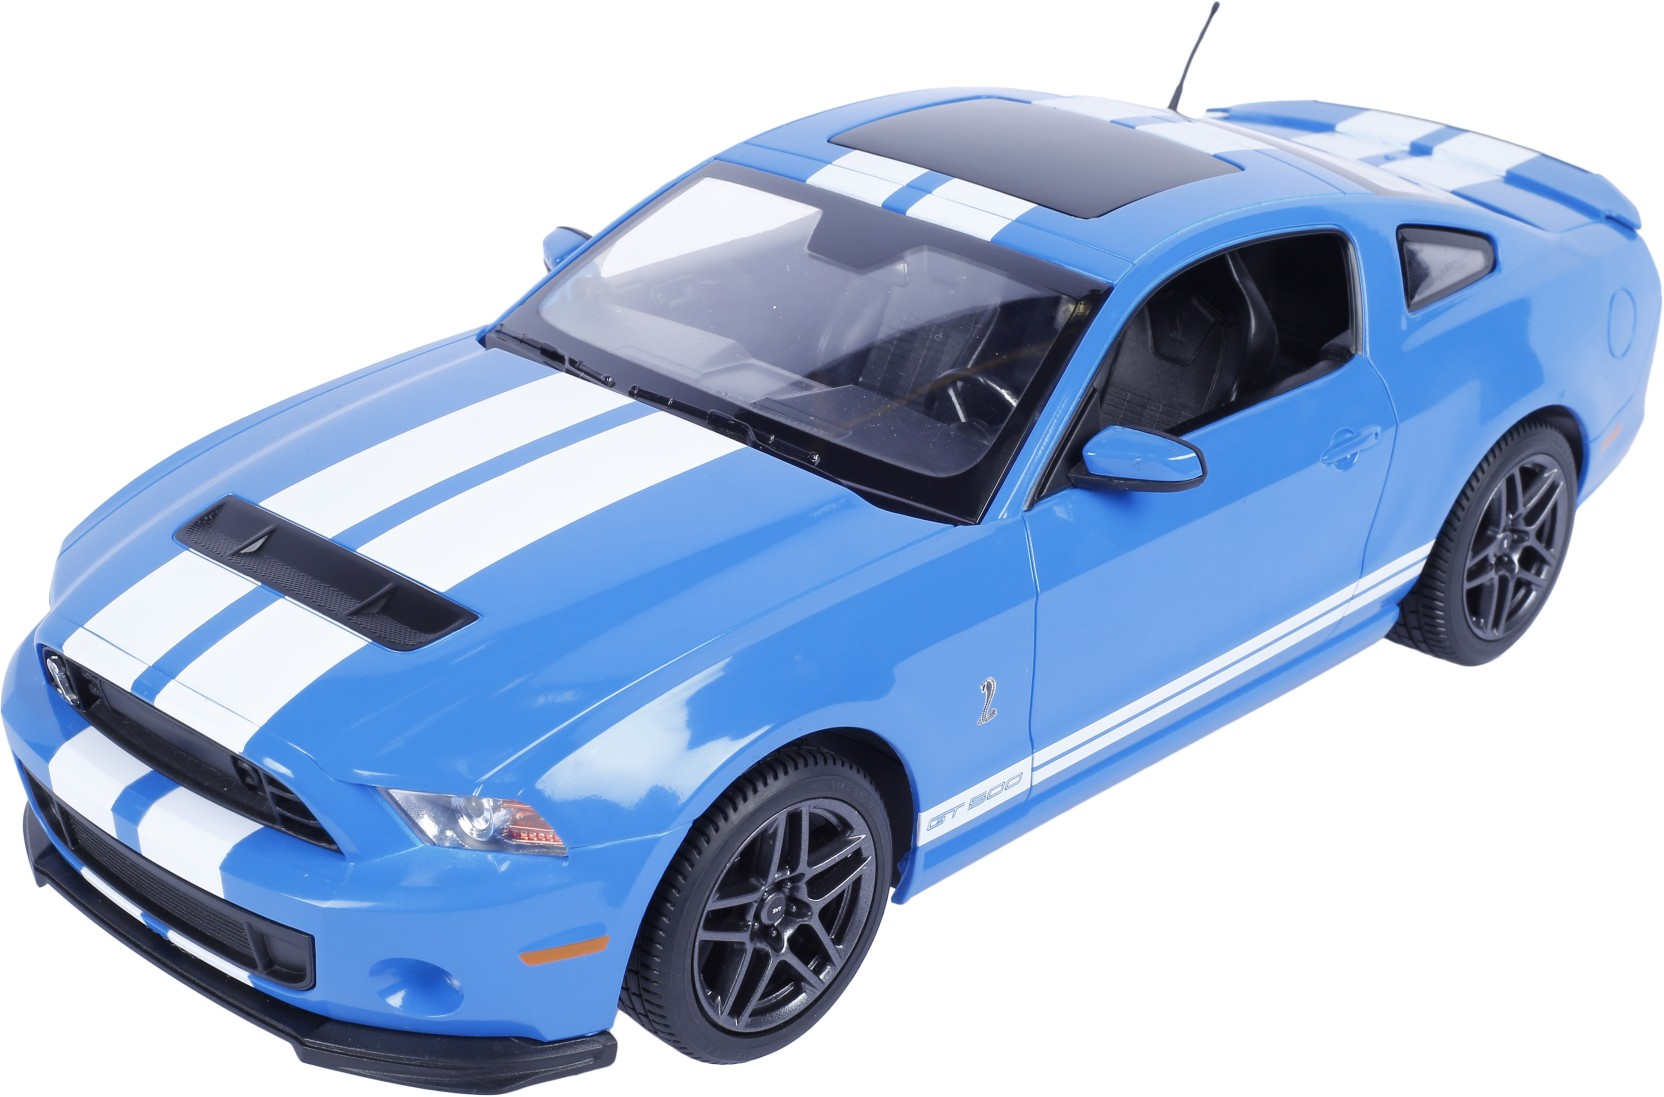 Toyhouse radio remote control 114 ford mustang shelby gt500 rc scale model car blue blue